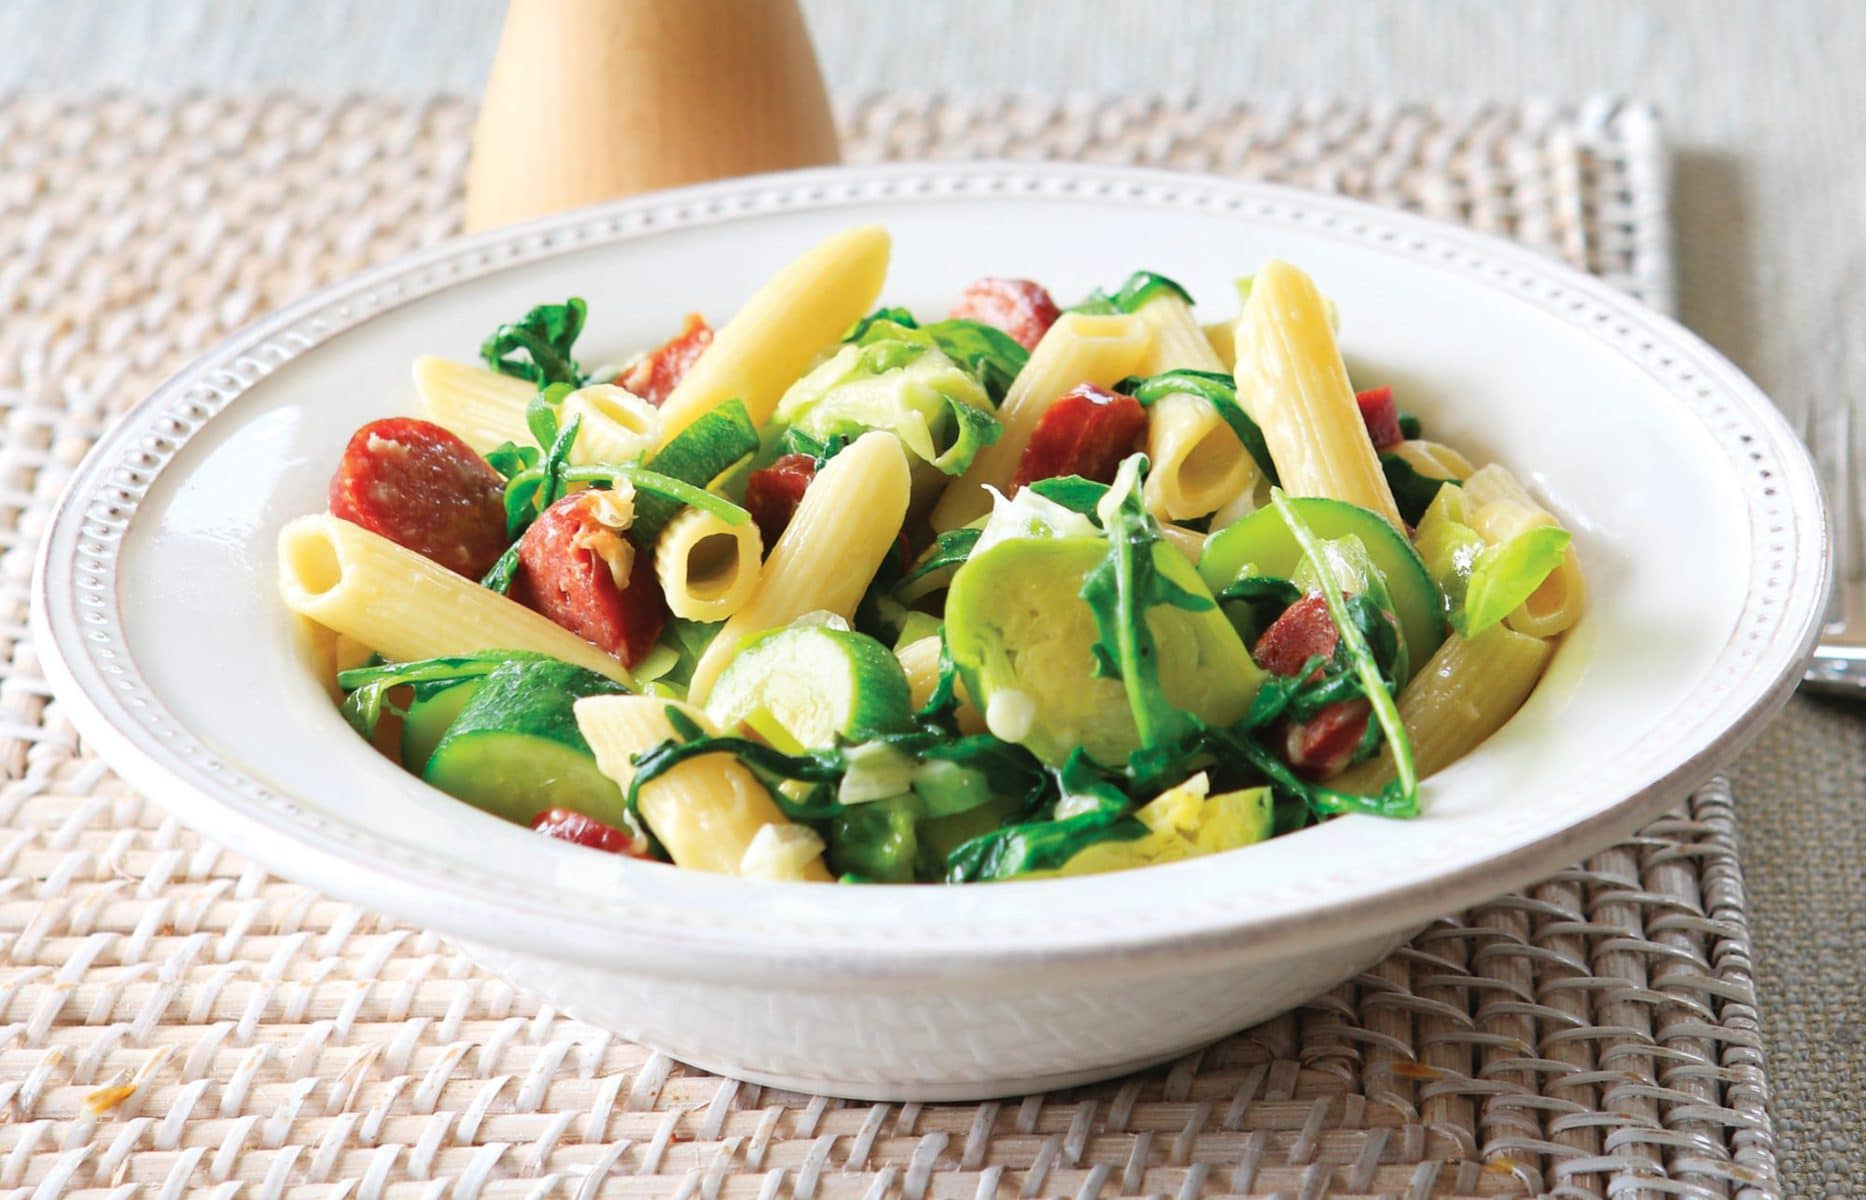 Penne with spicy sausage and Brussels sprouts